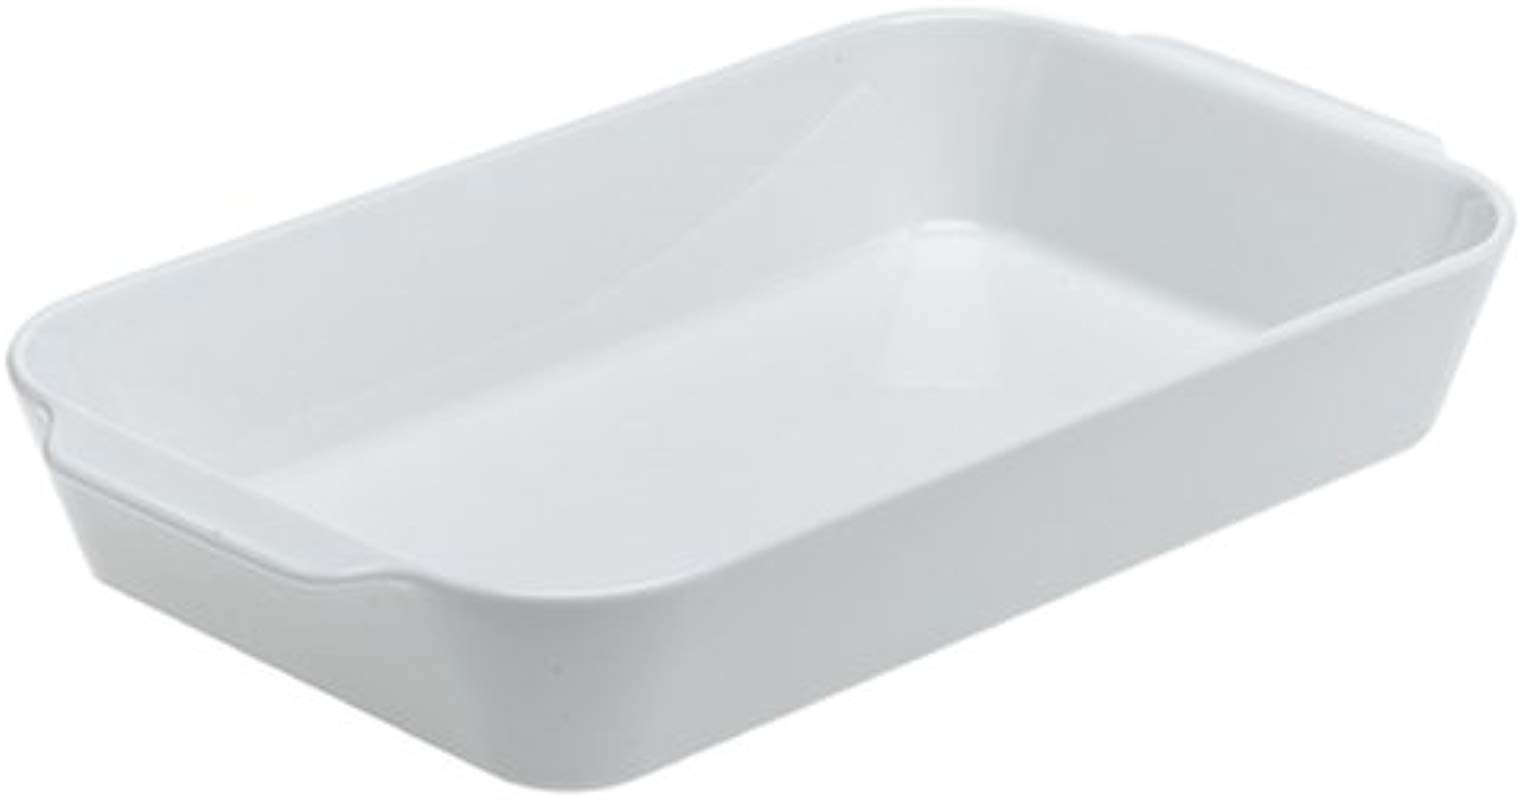 Pillivuyt Porcelain Extra Deep Rectangular Roaster With Ears Extra Large 15 By 10 By 3 Inch